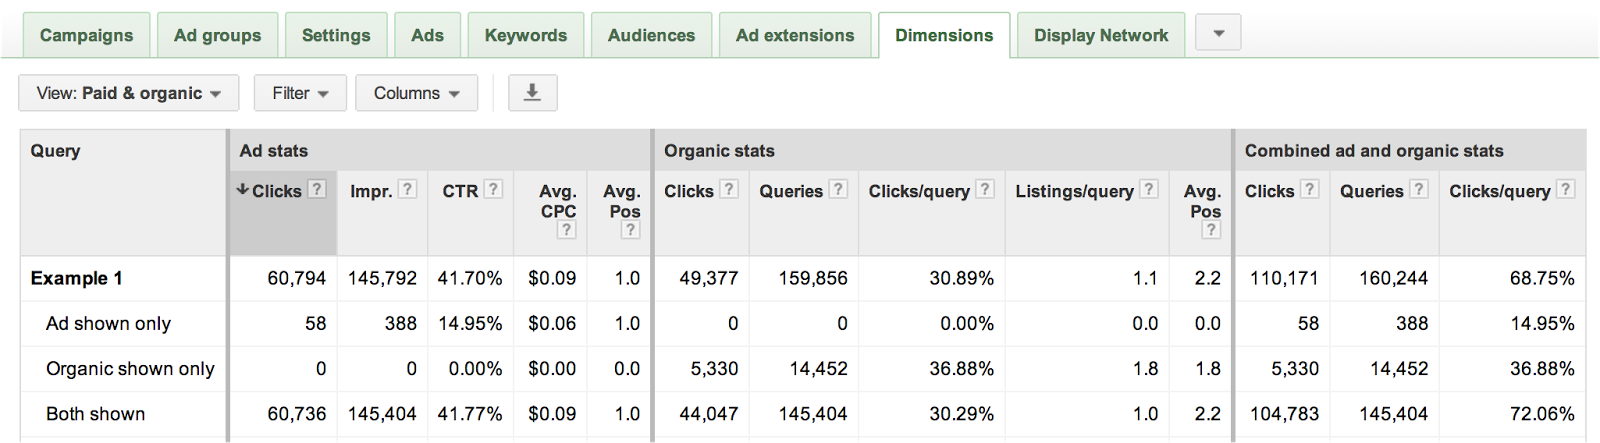 A sample of the paid and organic report from AdWords.